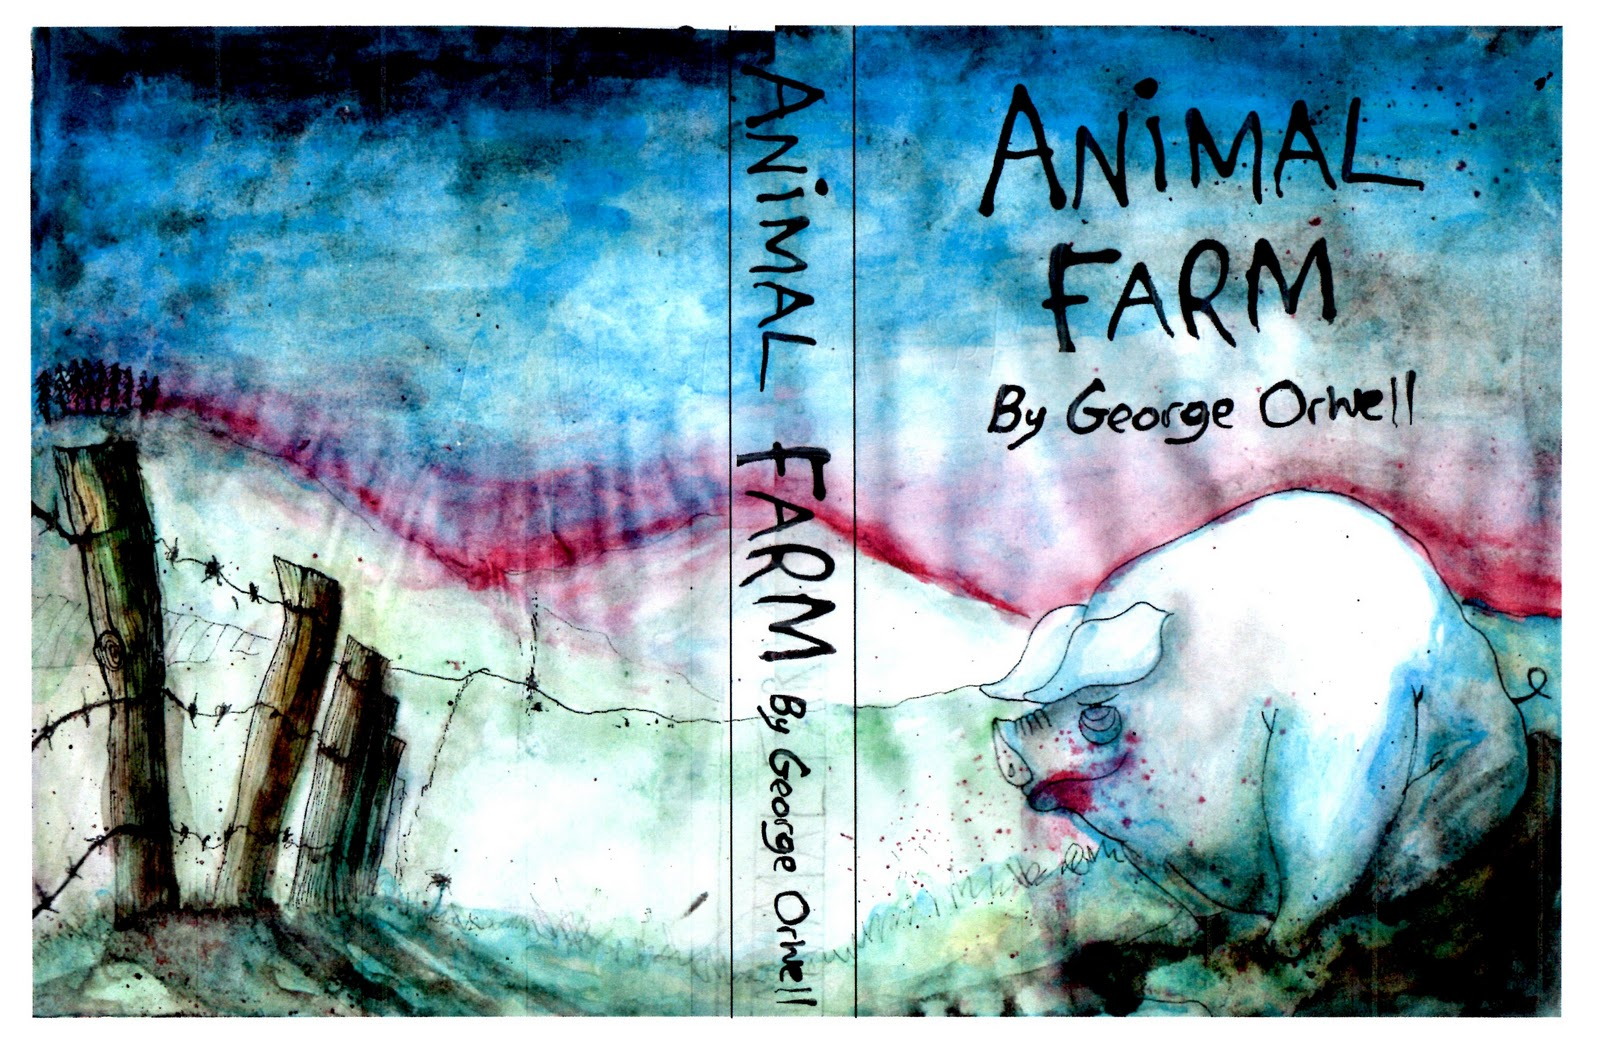 a representation of class stratification in animal farm a novel by george orwell George hardwell 10/10/10 animal farm: review by: george orwell chapter 1: the story starts with the owner, mr jones, forgetting to lock down his farm because he is drunk when he goes to sleep, the animals of the farm hold a meeting in the barn to hear a speech from a boar named old major.